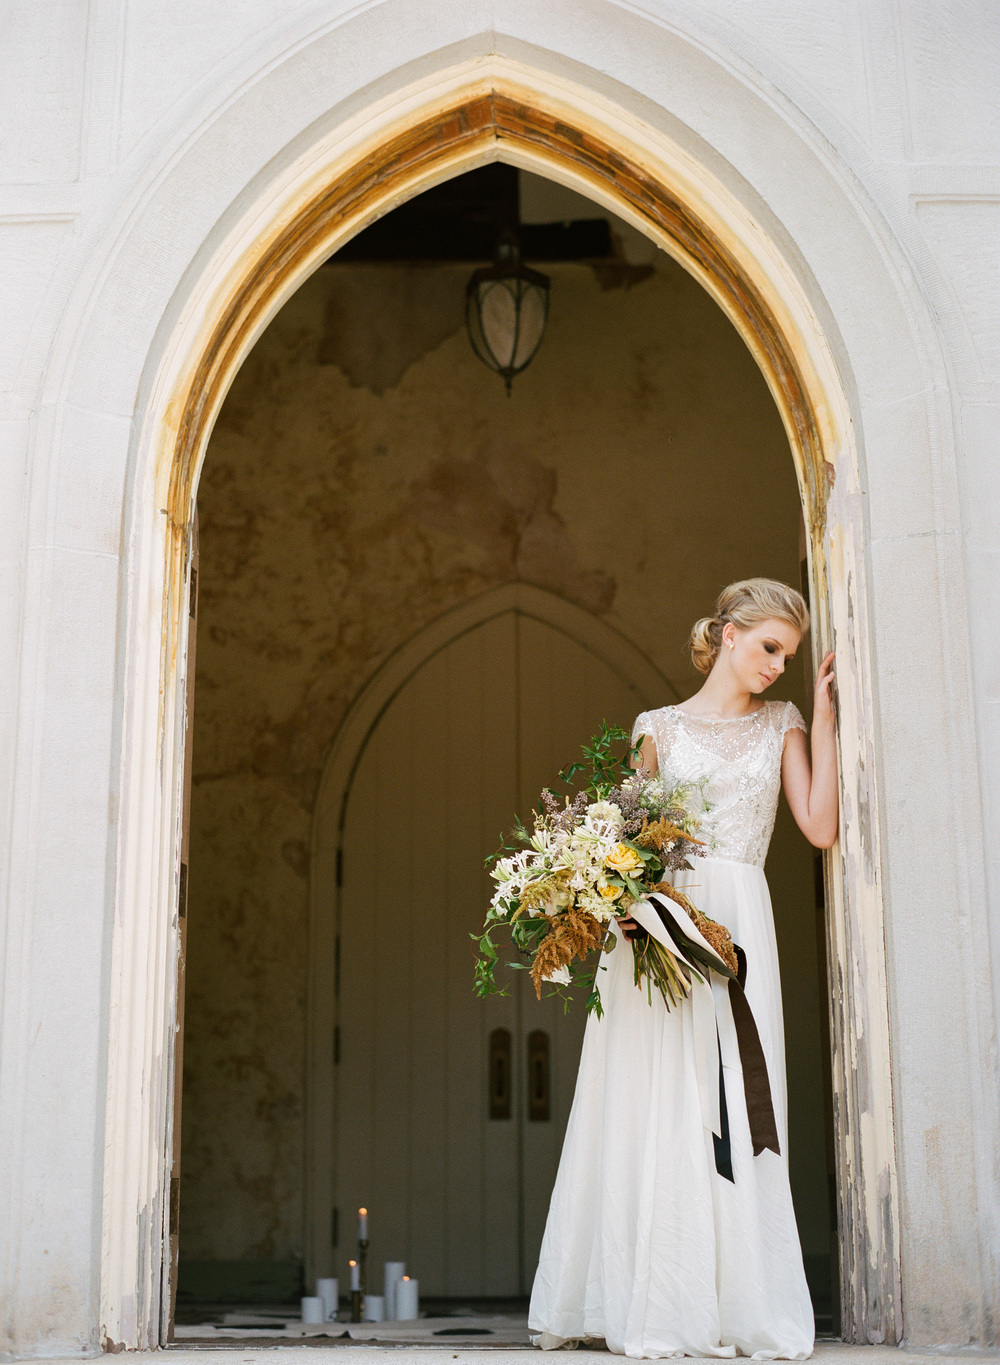 Olivia-Griffin-trendy-bride-magazine-willow-florals-sarah-seven-gwen-ivory-and-beau-bridal-boutique-savannah-wedding-dresses-savannah-bridal-boutique-savannah-wedding-savannah-bridal-gowns-savannah-wedding-planner-georgia-bridal-boutique-19.JPG